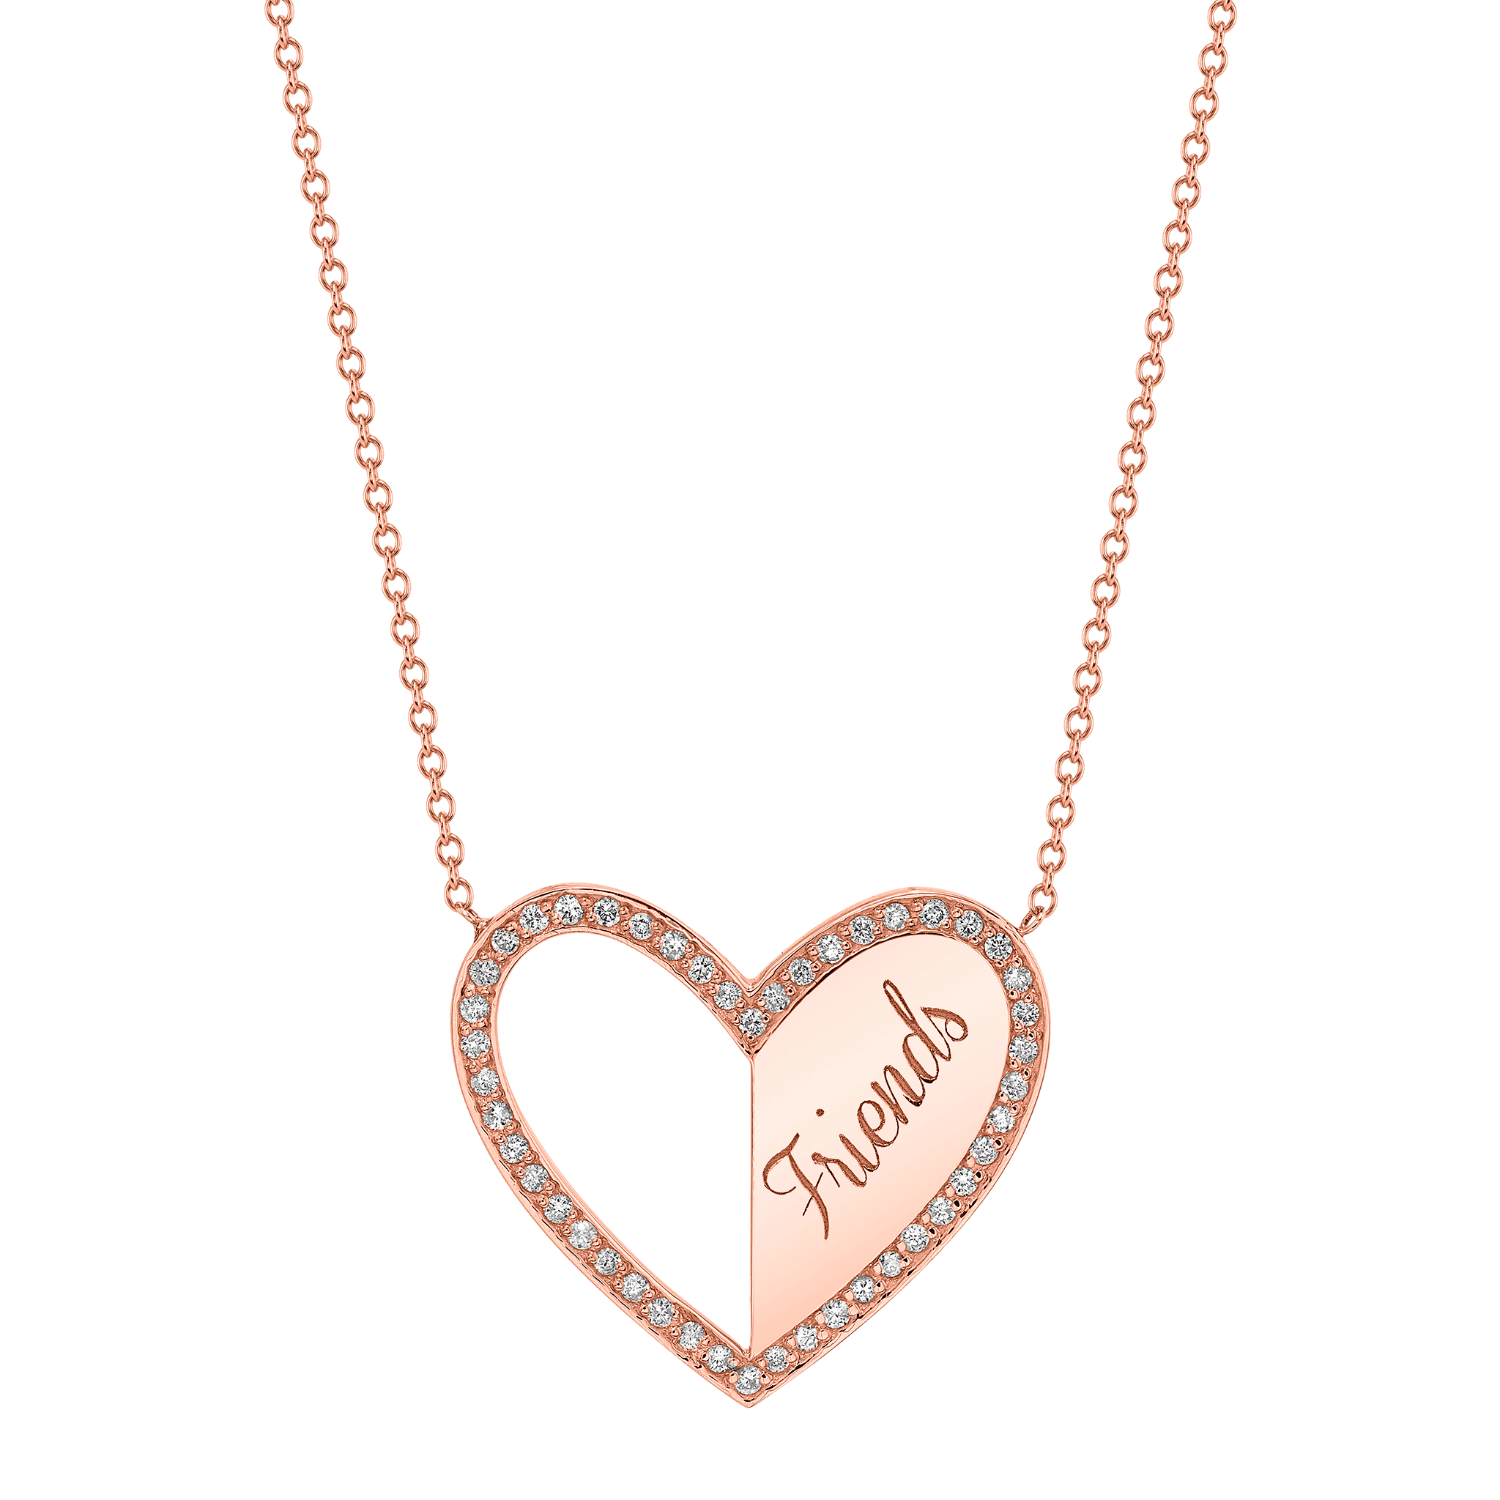 Best Friend Heart Necklaces (Set of 2)